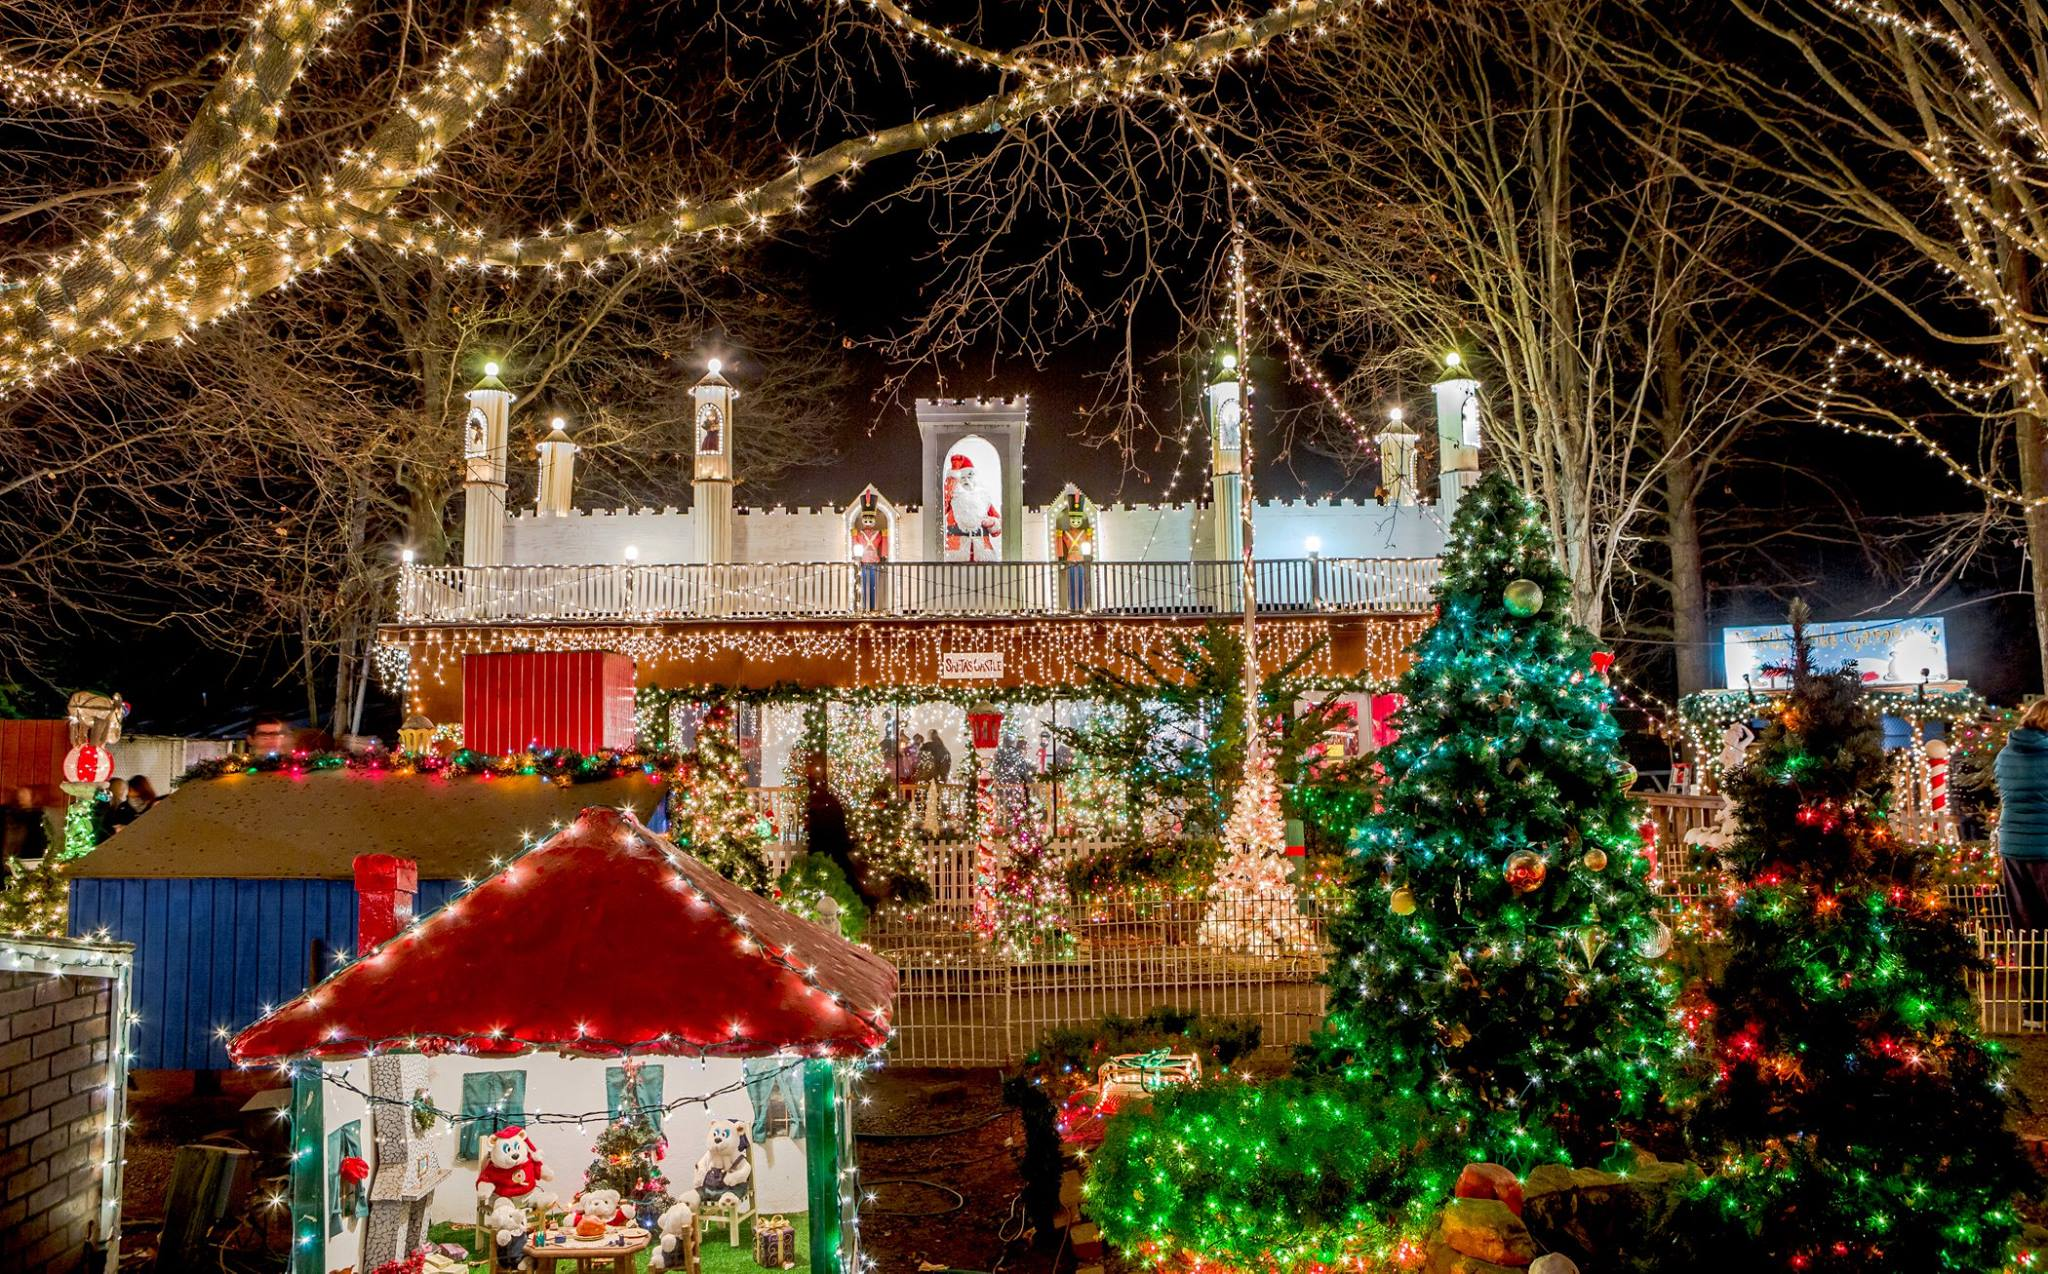 ZooLights at Stone Zoo Is Best Winter Lights Display In Boston